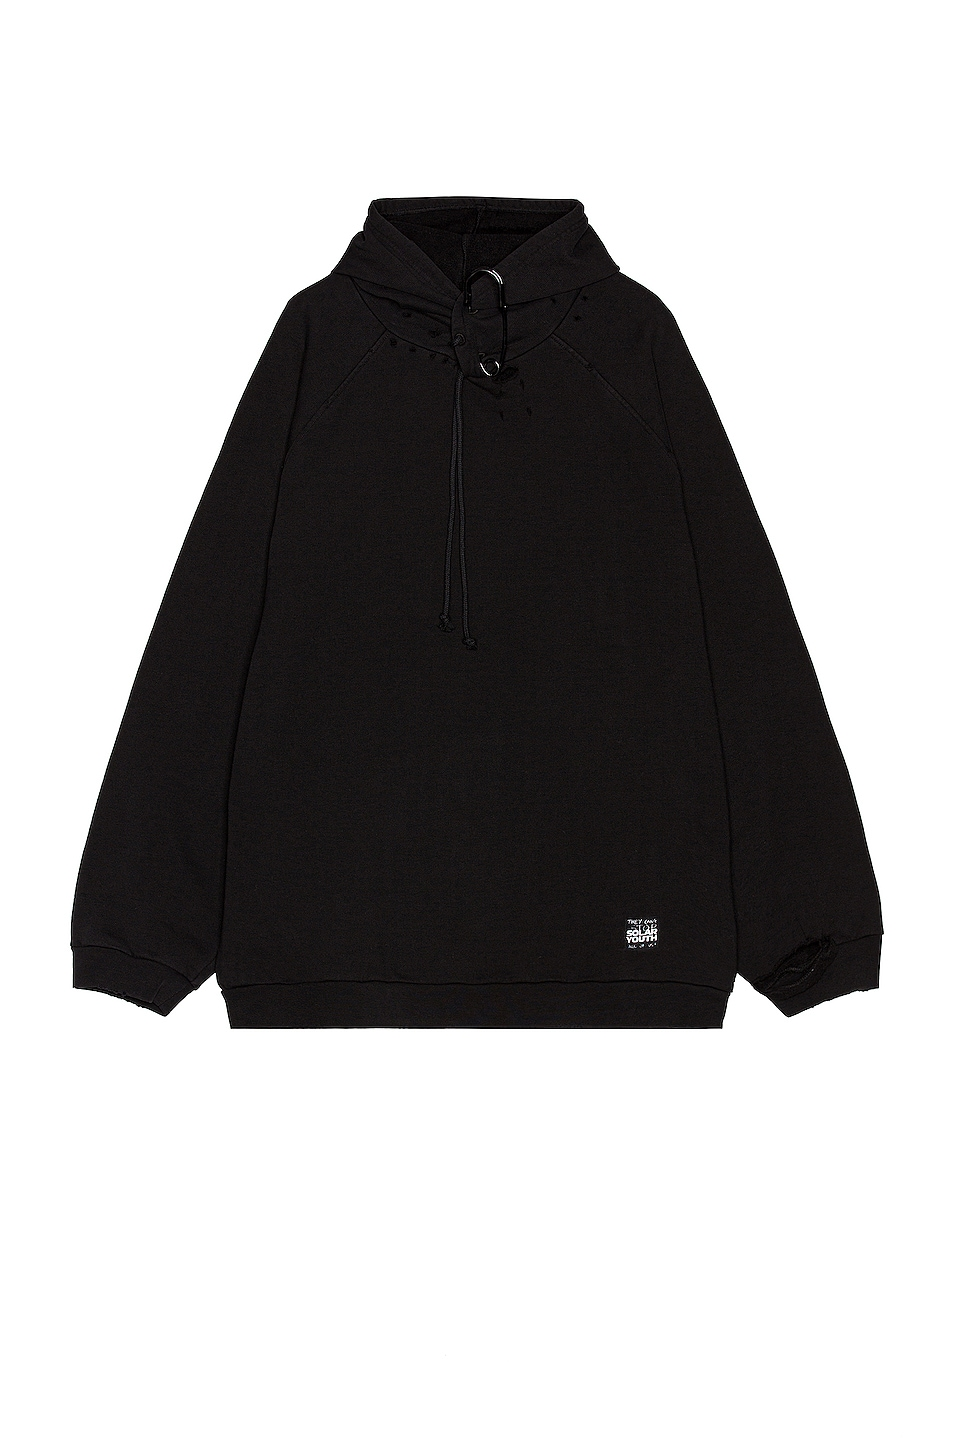 Image 1 of Raf Simons Destroyed Oversized Hoodie With Big Pin in Black